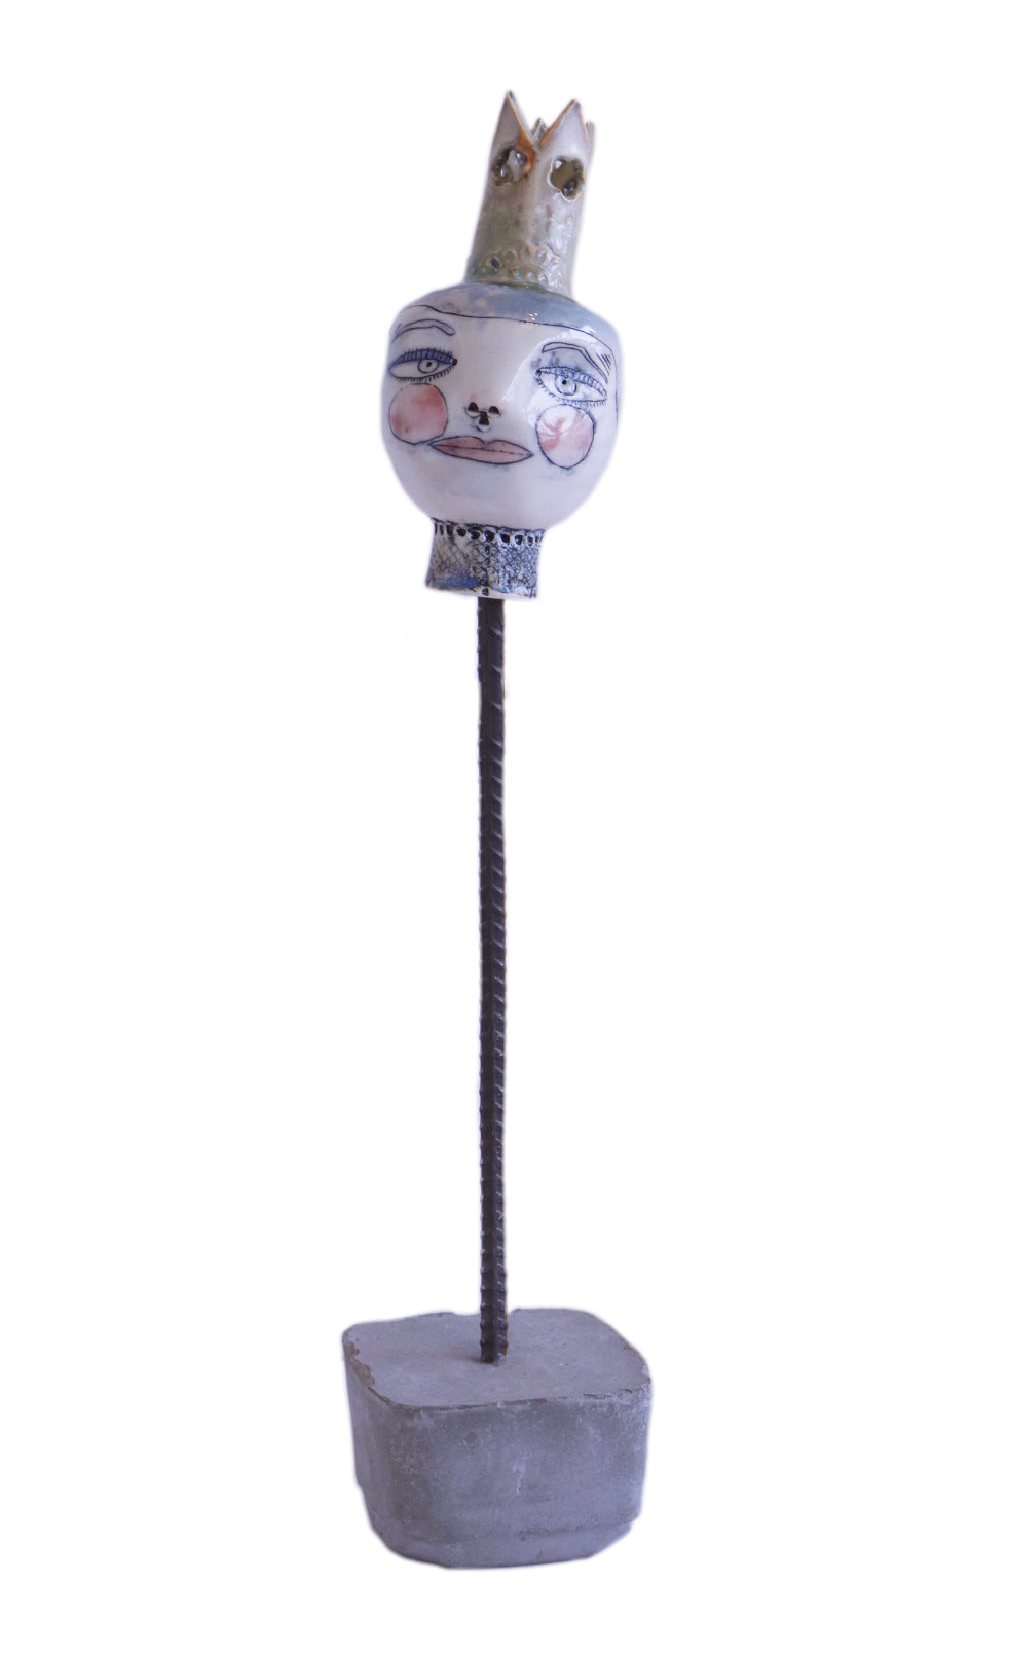 PUPPET WITH TALL CROWN, LISA MERTINS